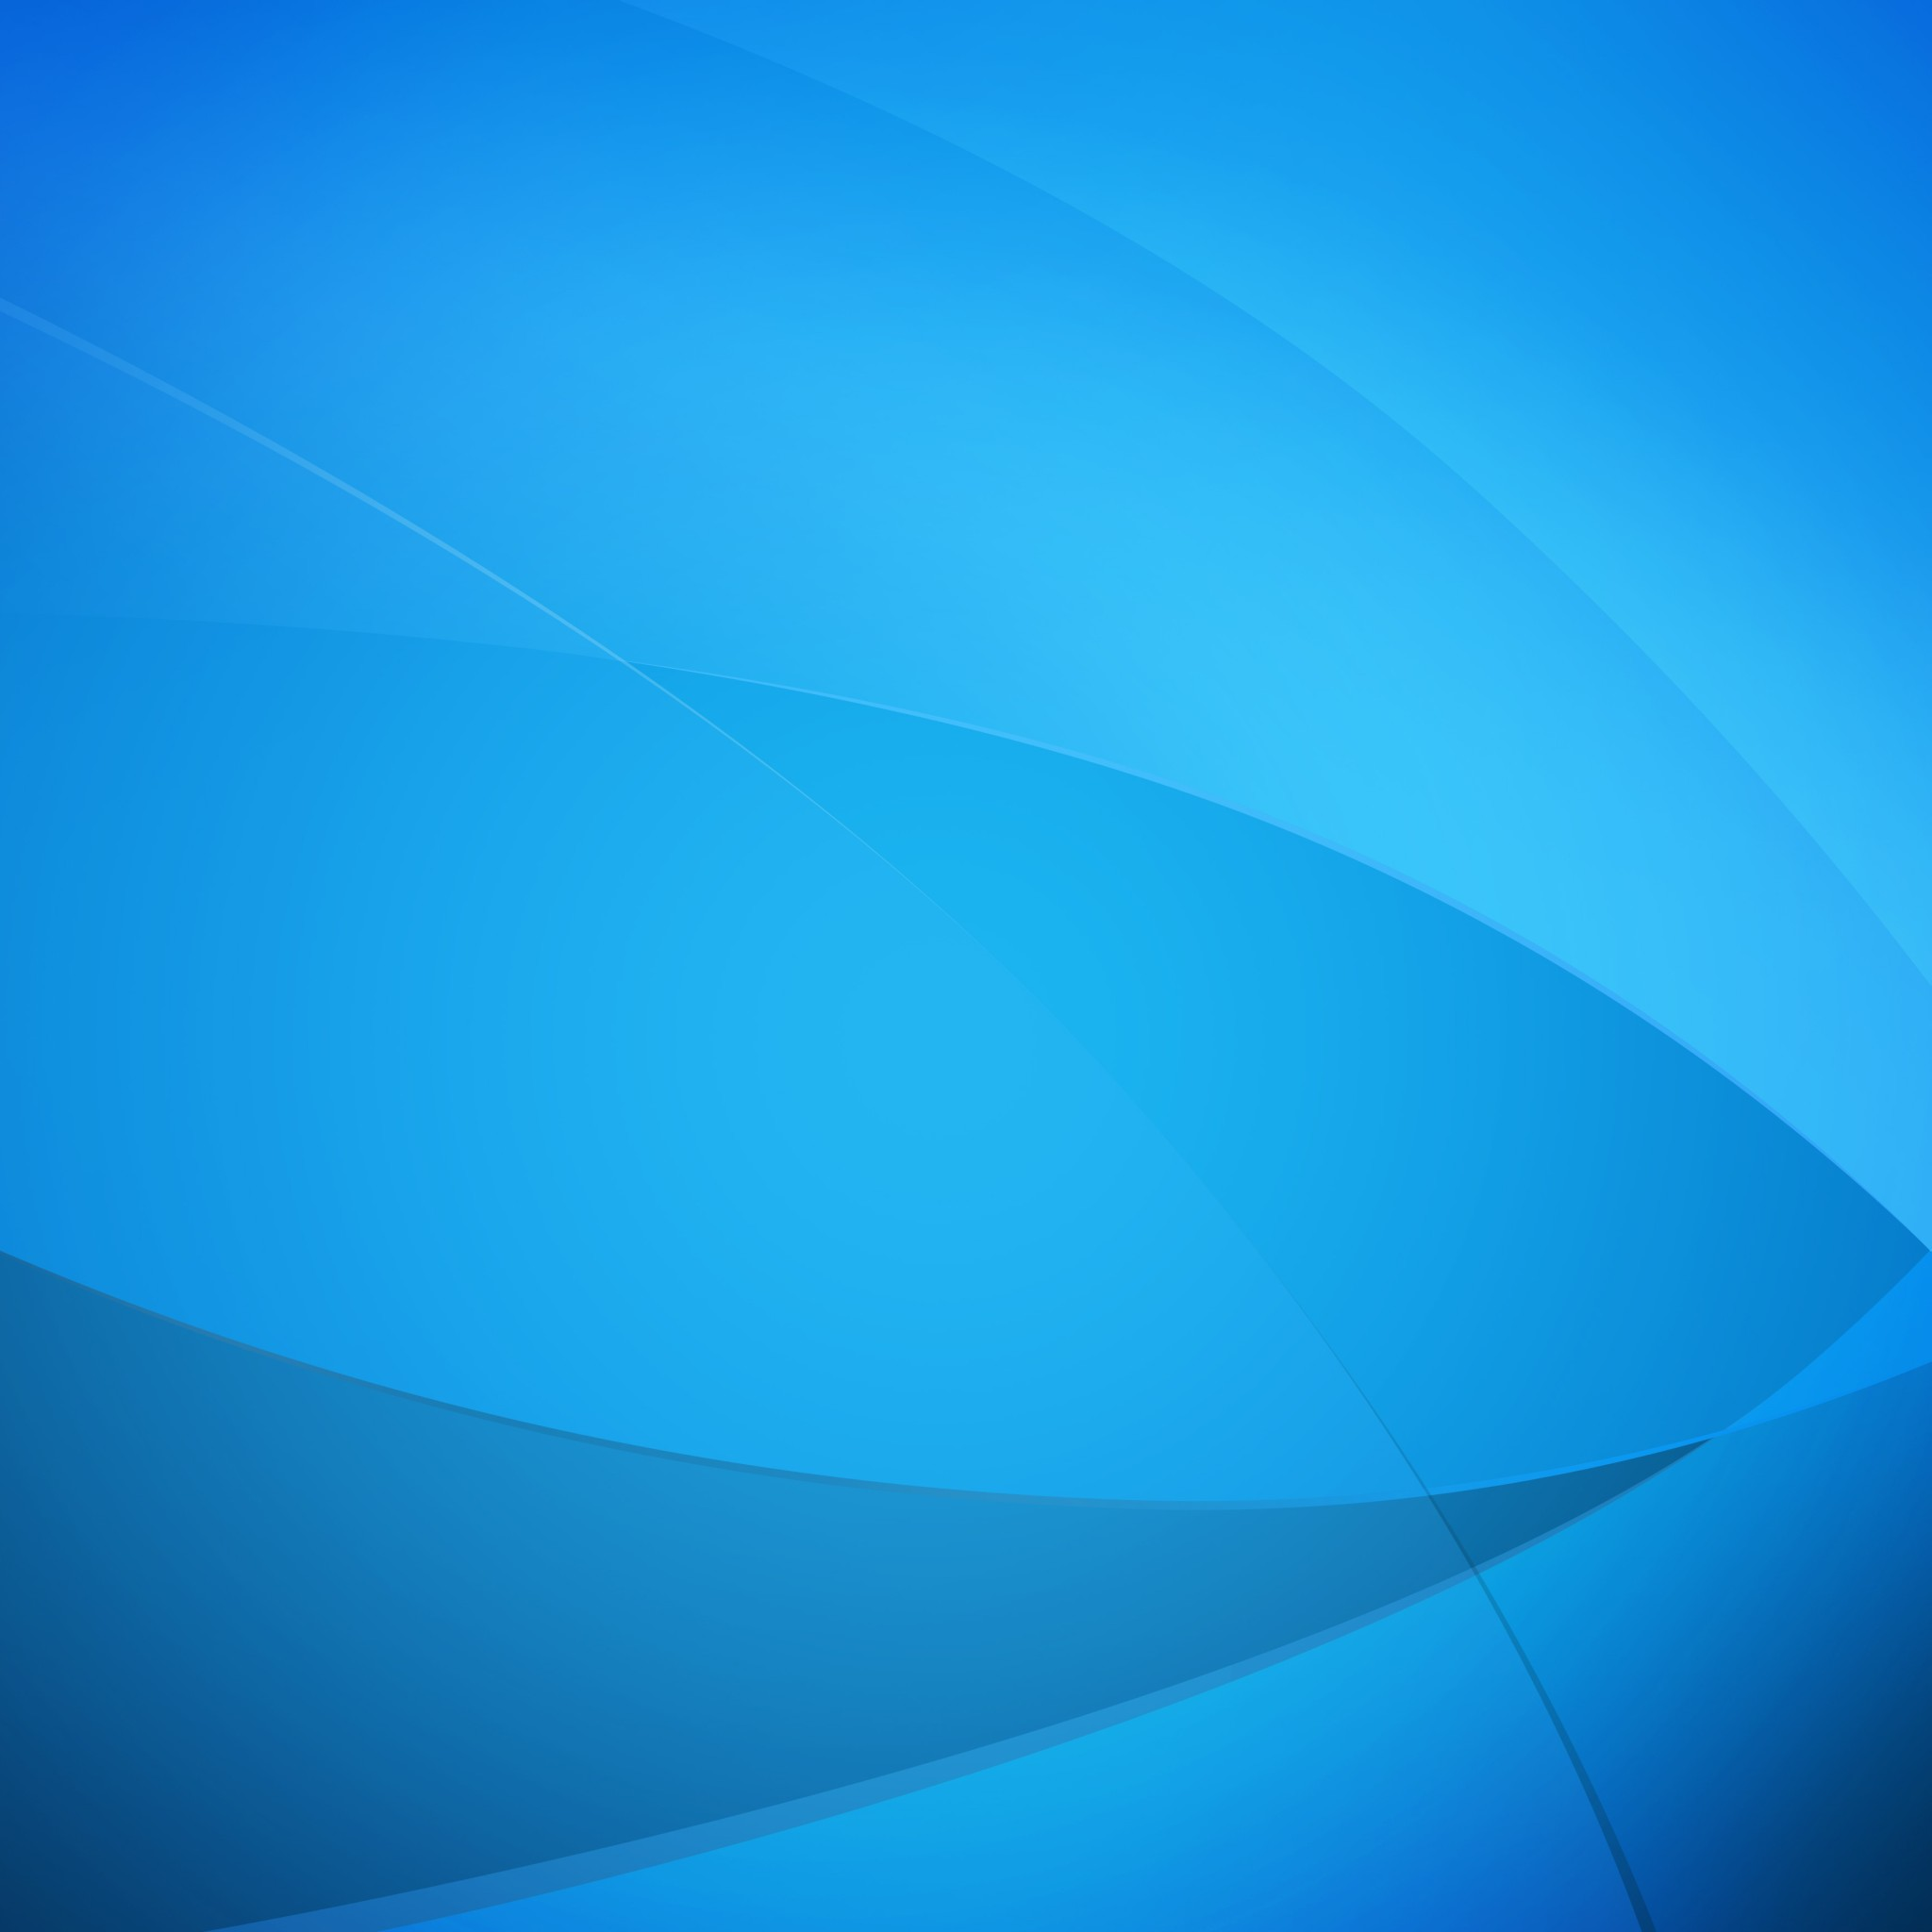 Newest iPad 3 wallpapers Abstract Wallpapers Blue Color 2048x2048